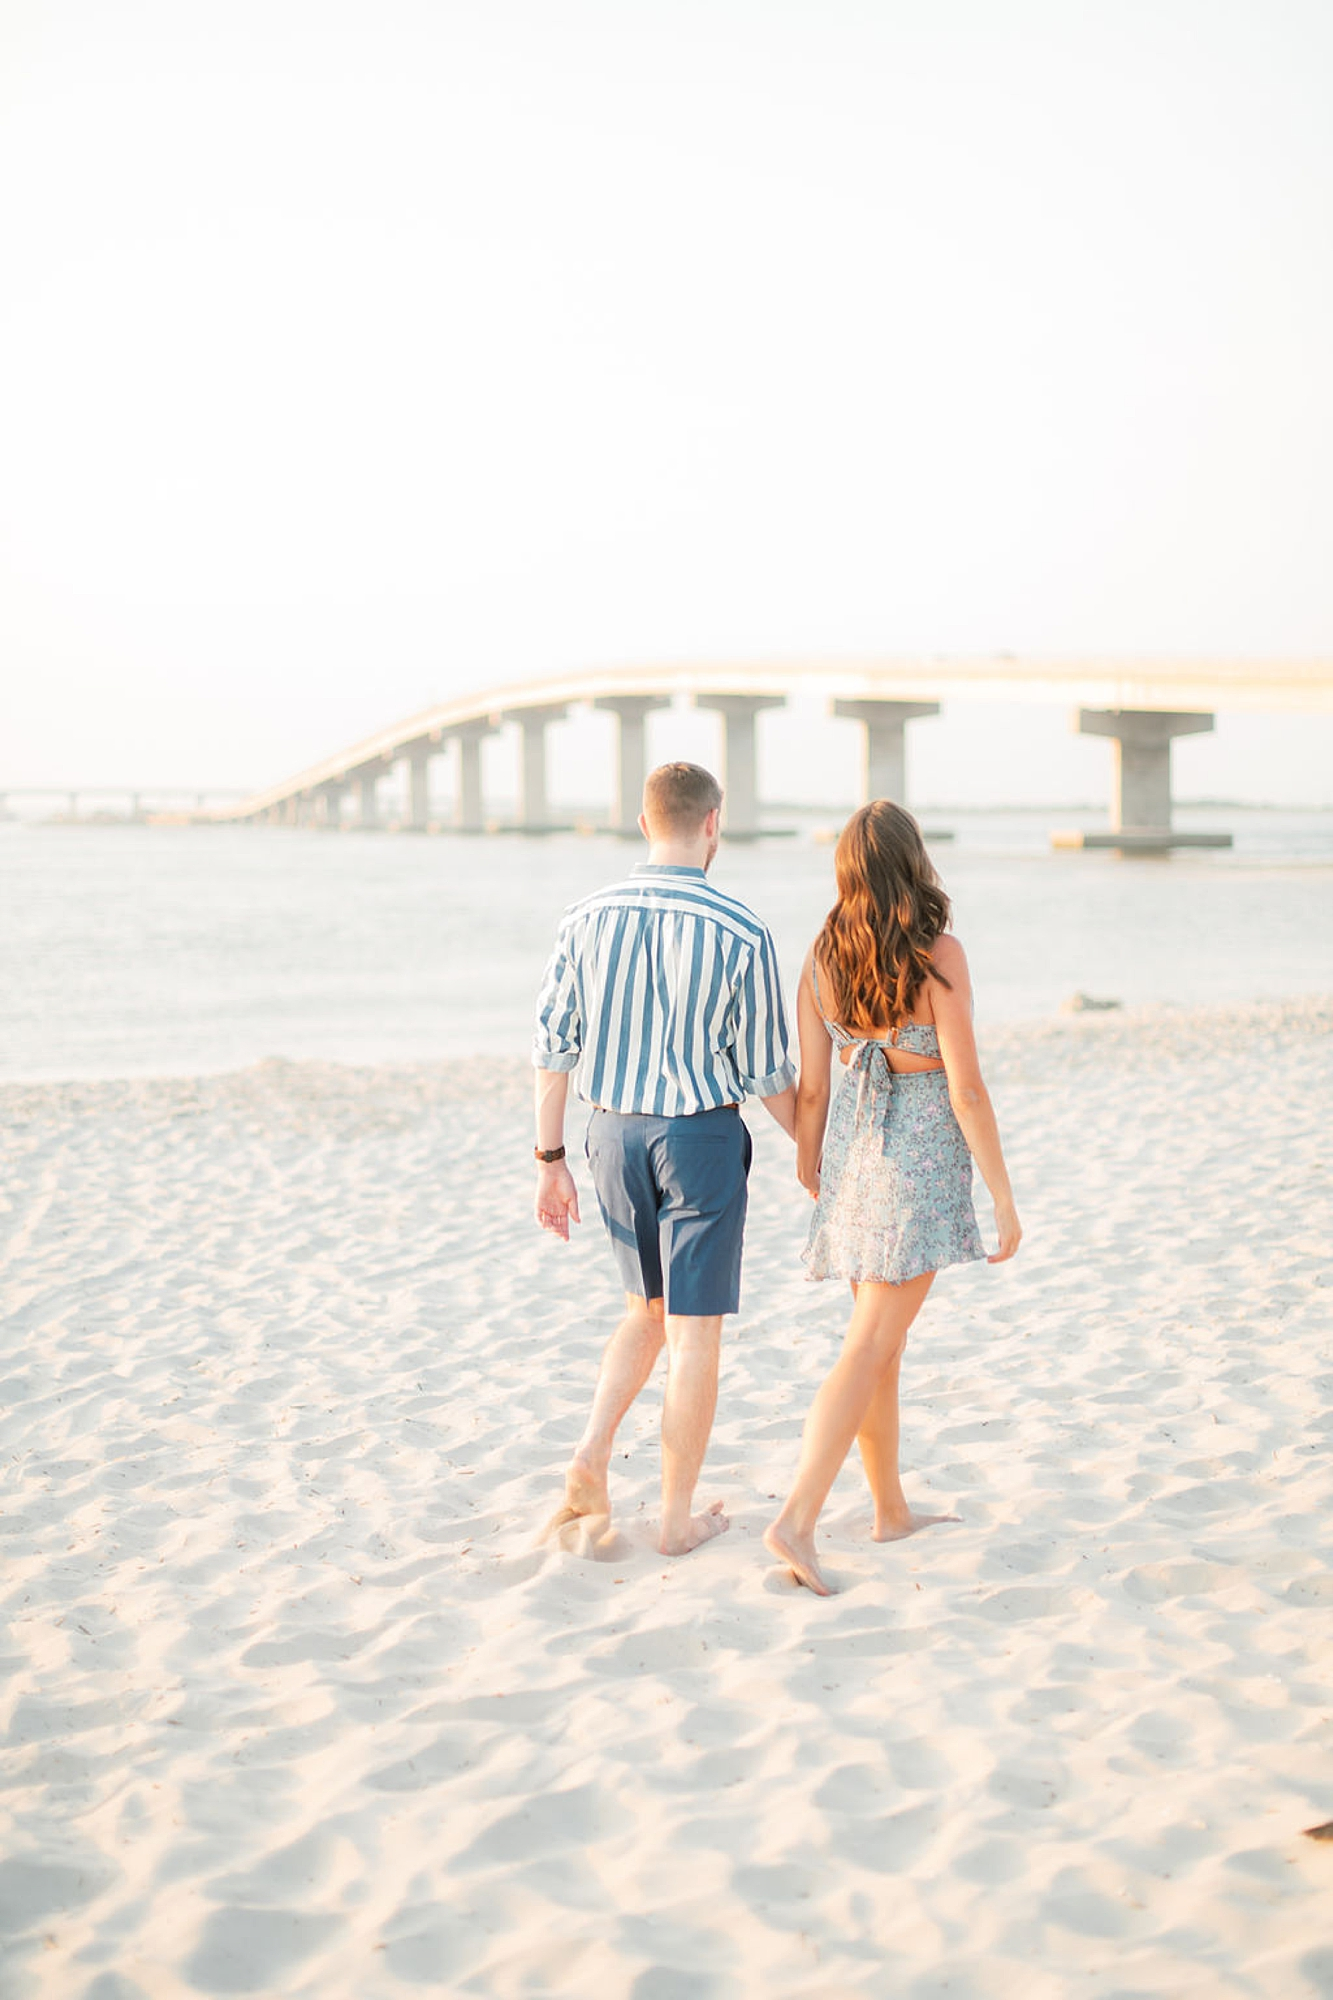 Bright and Fun Engagement Photography in Ocean City NJ by Magdalena Studios 0021